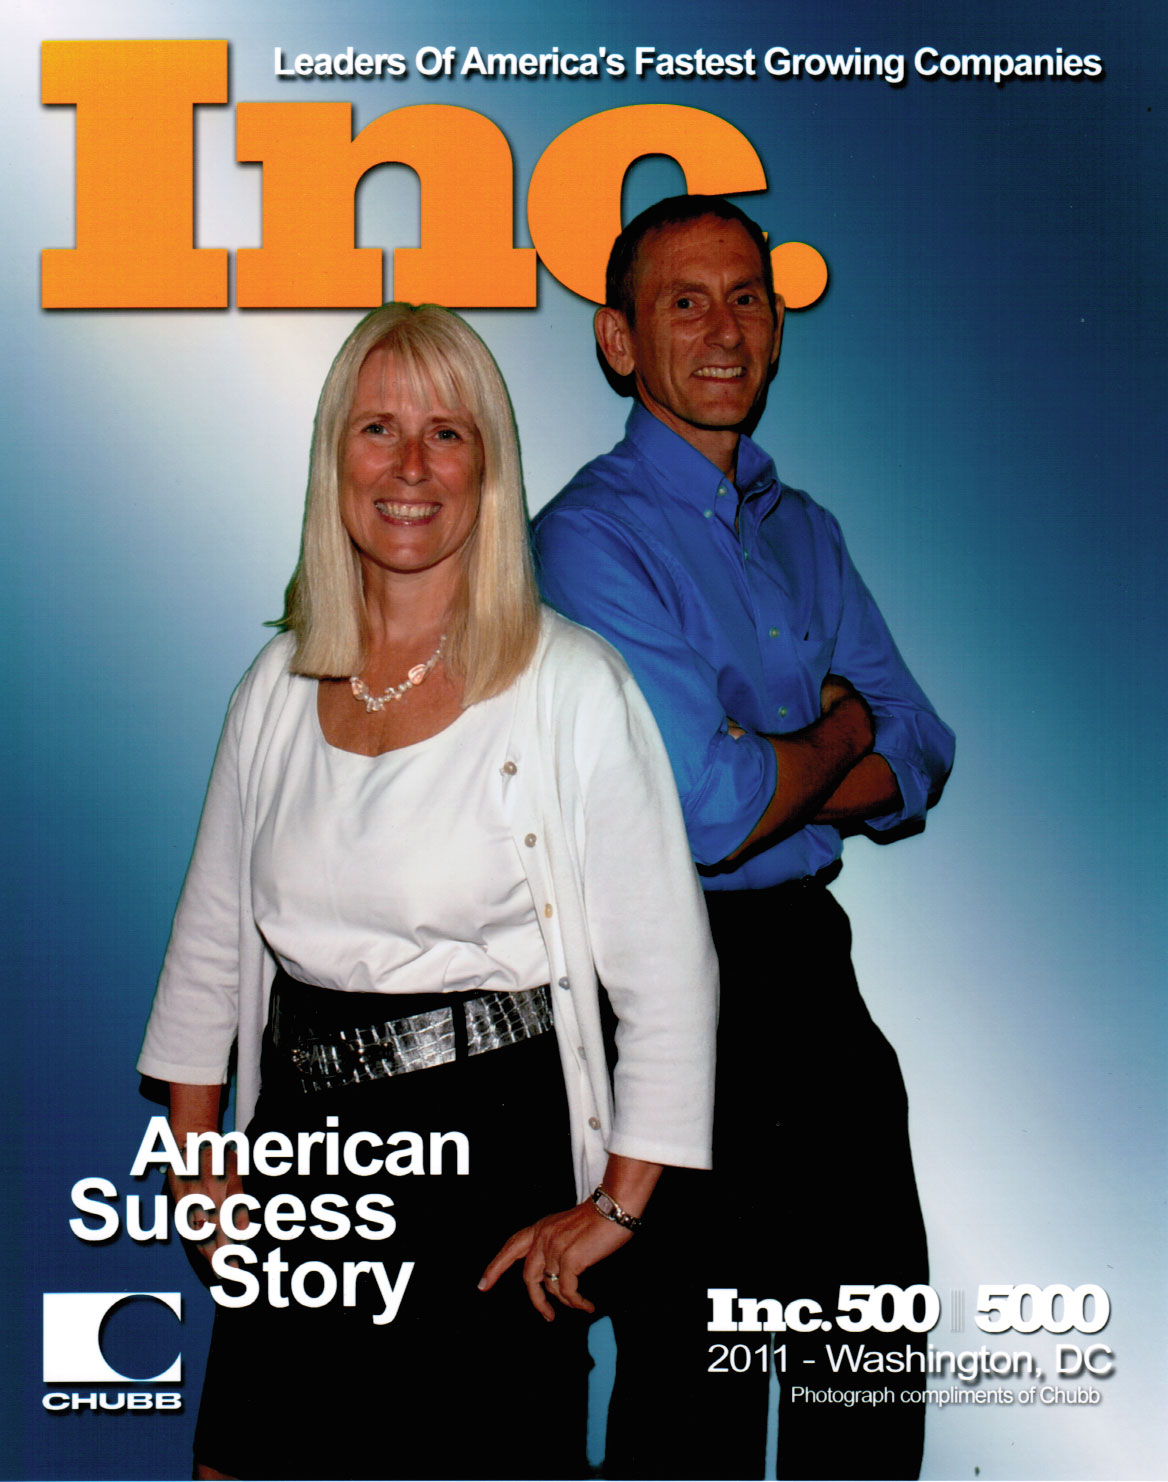 Michele and Bob Dufresne having a little fun at the Inc. 5000 Conference in September 2011.